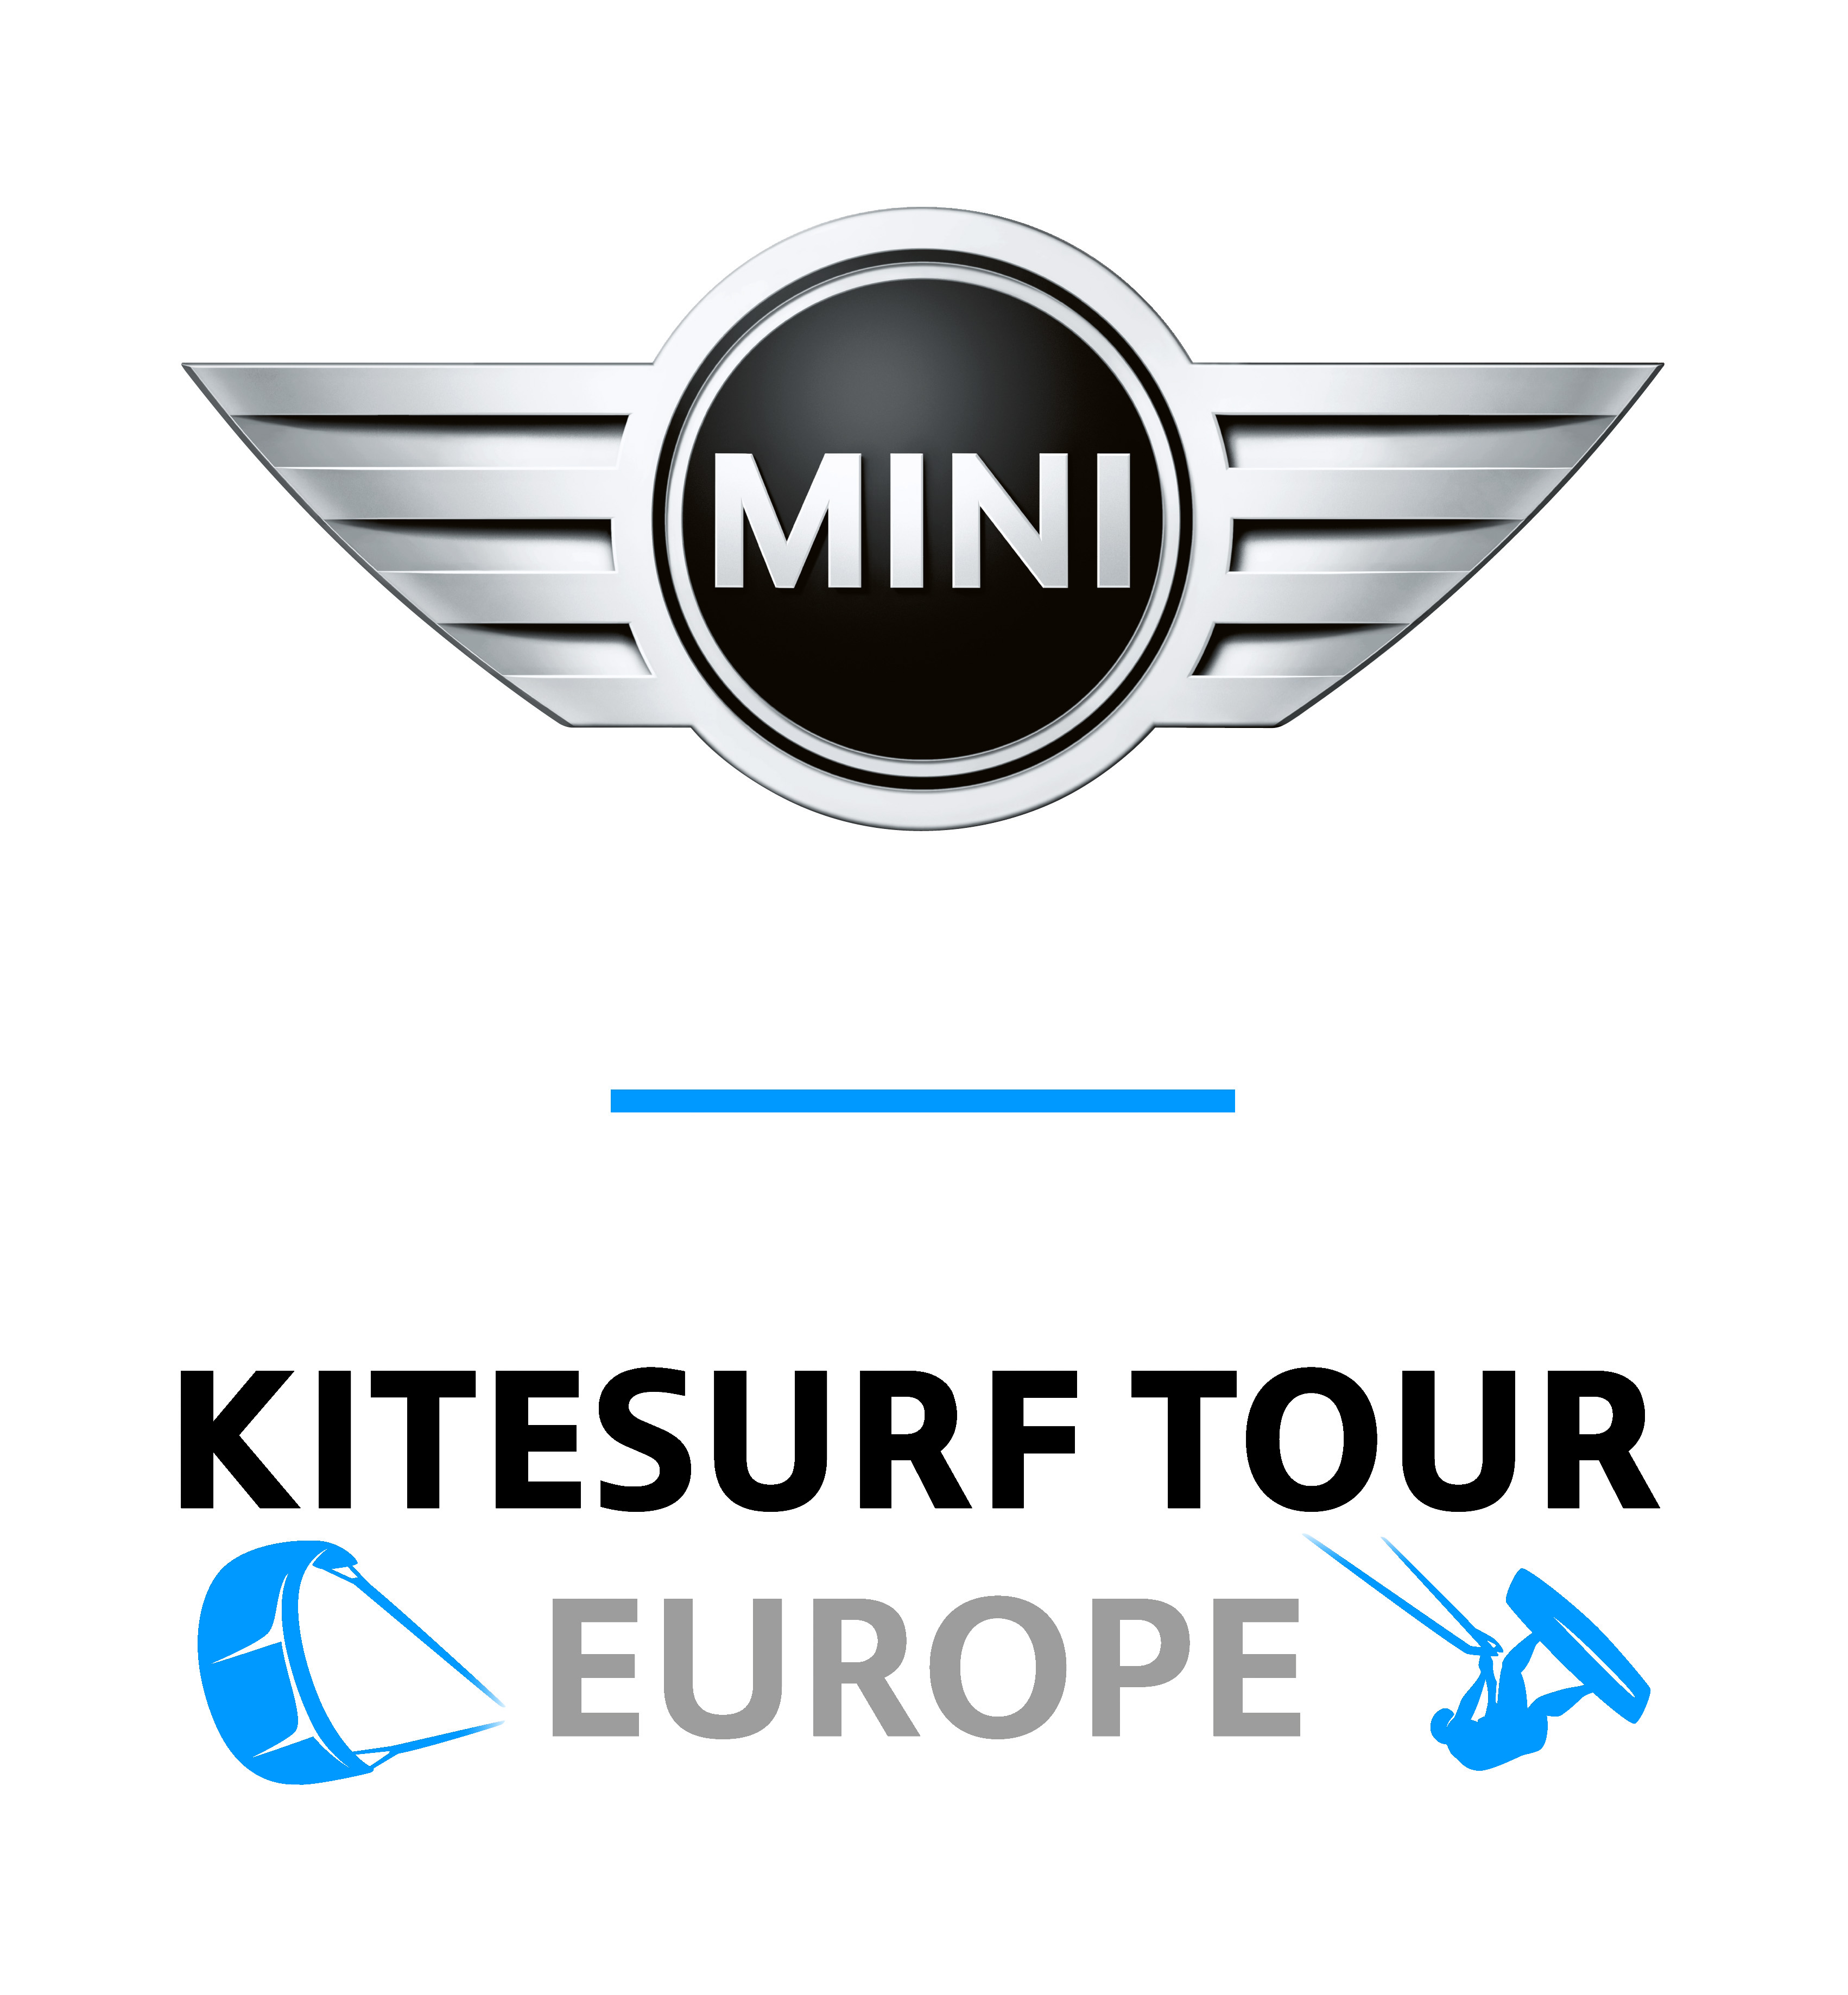 MINI Kitesurf Tour Europe du 27 au 30 septembre 2012